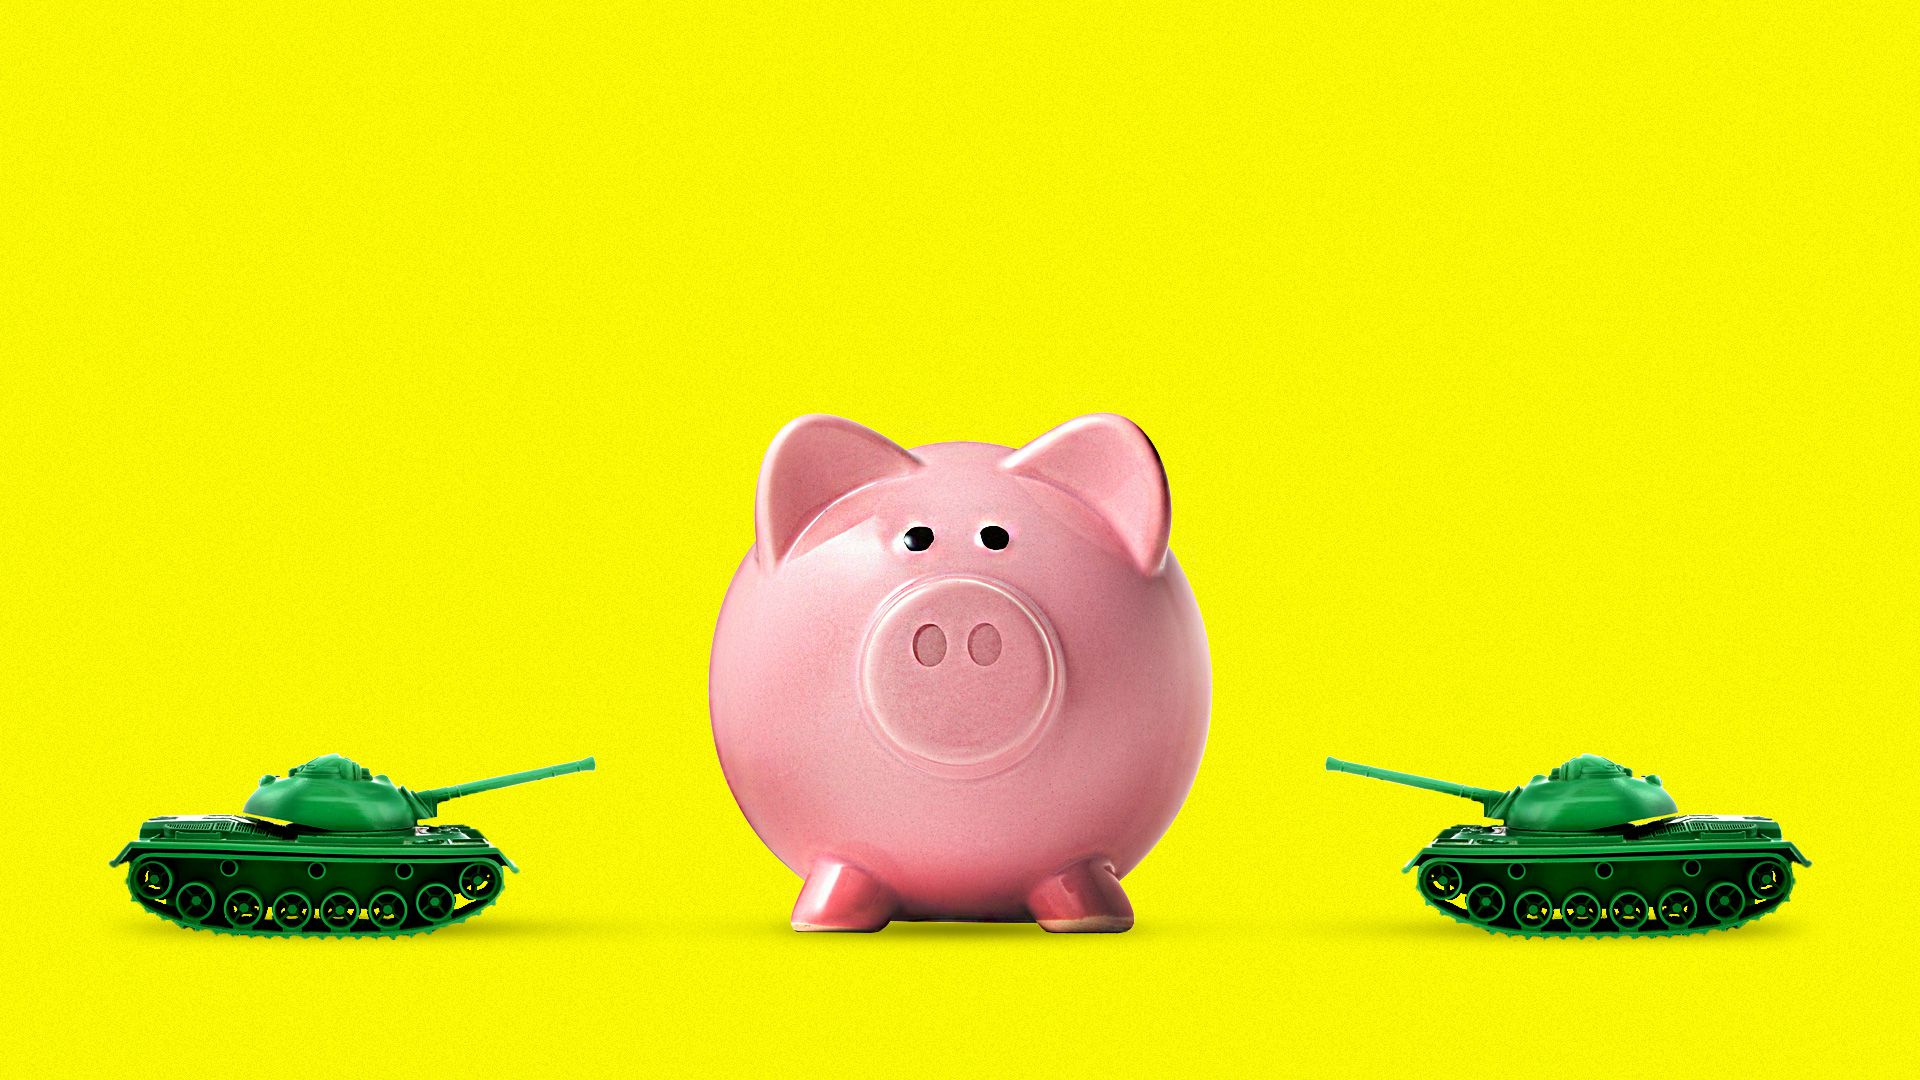 Two battle tanks taking aim at a piggy bank.